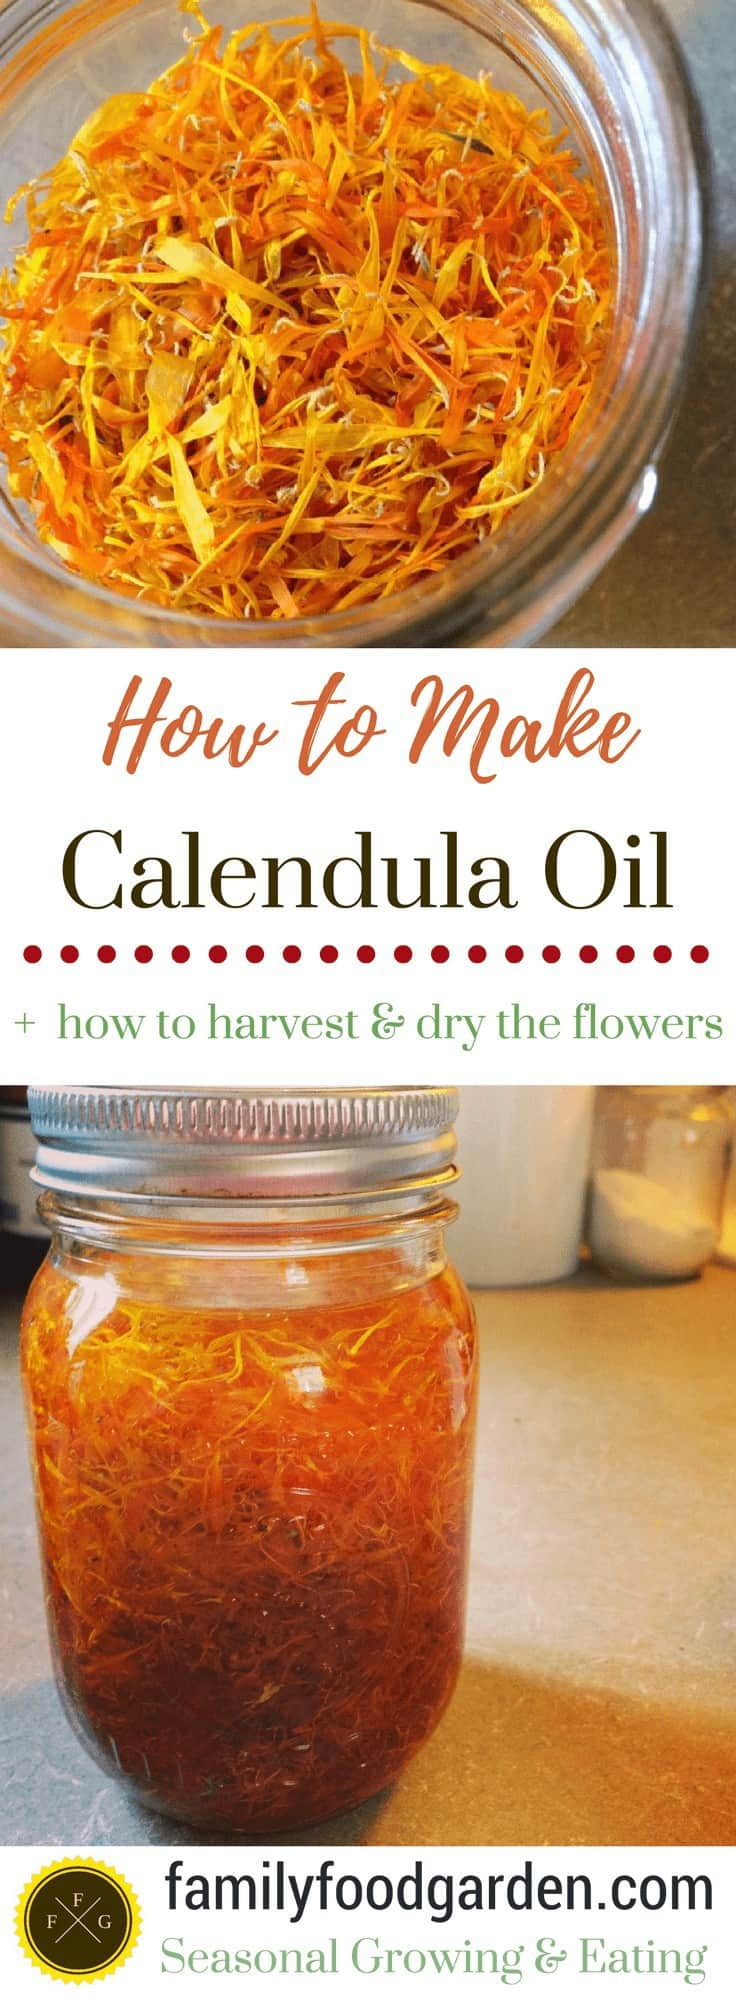 Learn how to harvest and dry calendula flowers and make your own herbal healing infusion of calendula oil. Step by step how to make calendula oil.